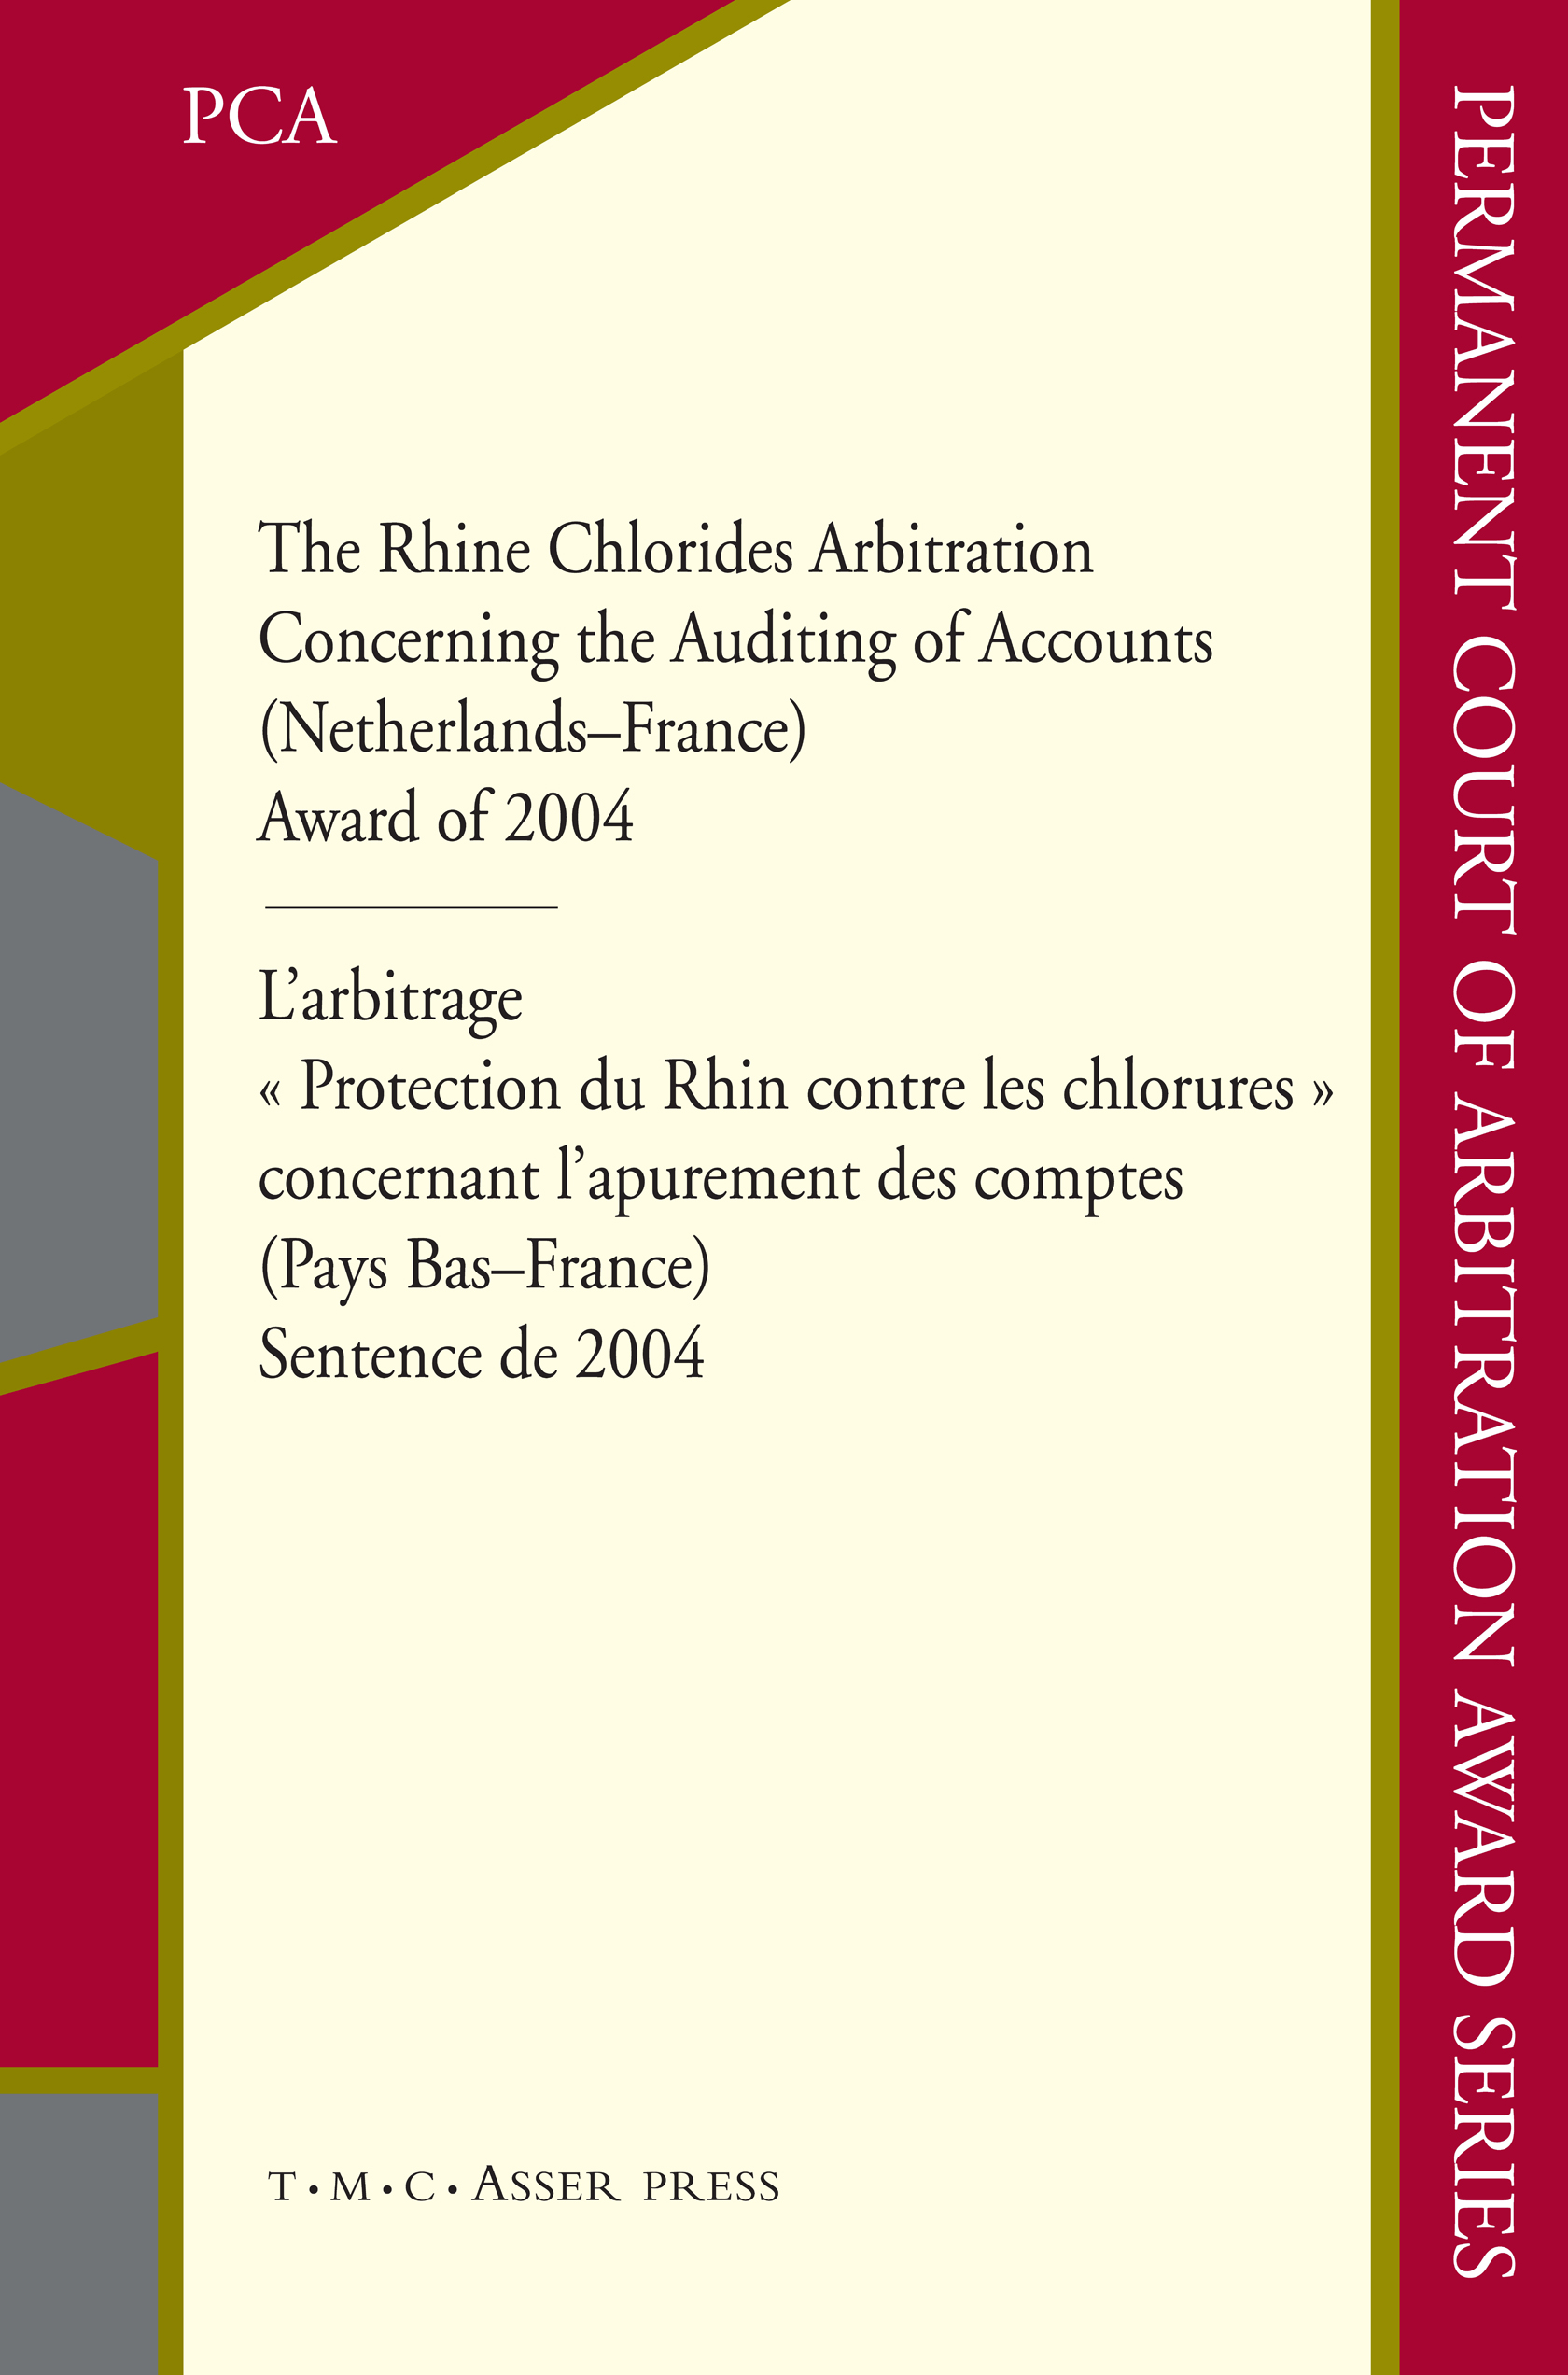 The Rhine Chlorides Arbitration Concerning the Auditing of Accounts (Netherlands–France) Award of 2004